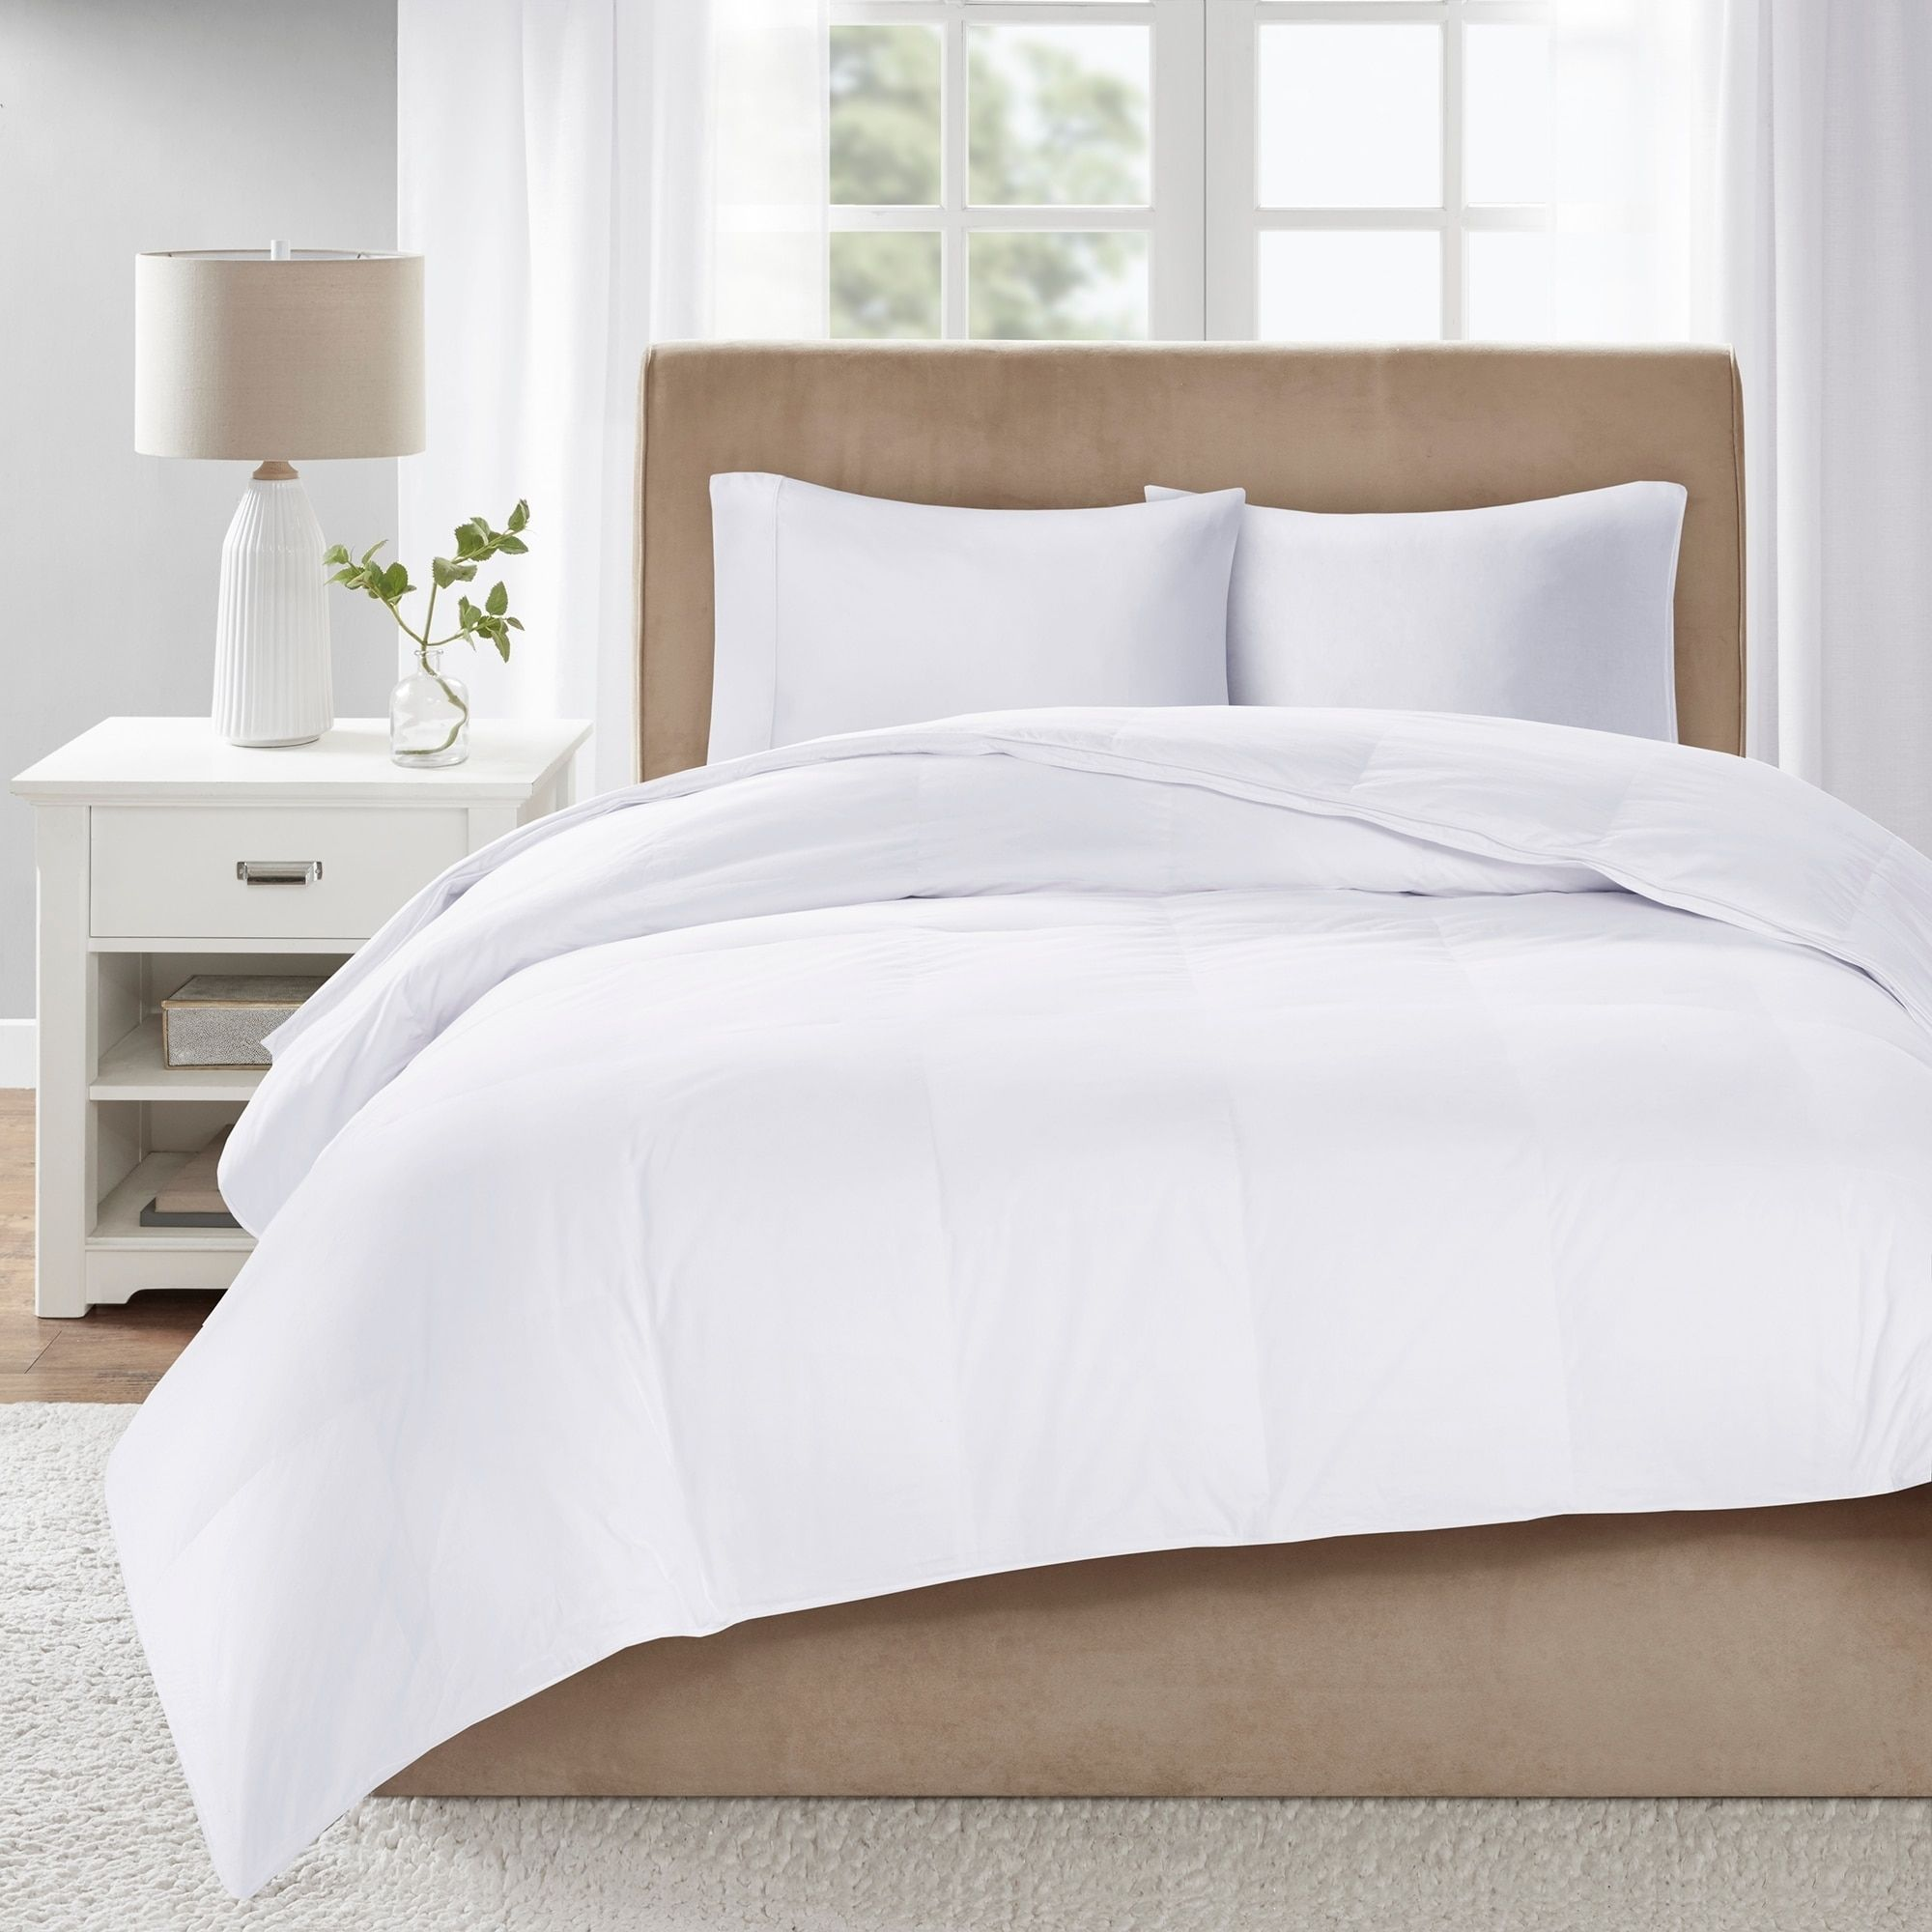 True North By Sleep Philosophy Level 3 White 300 Thread Count